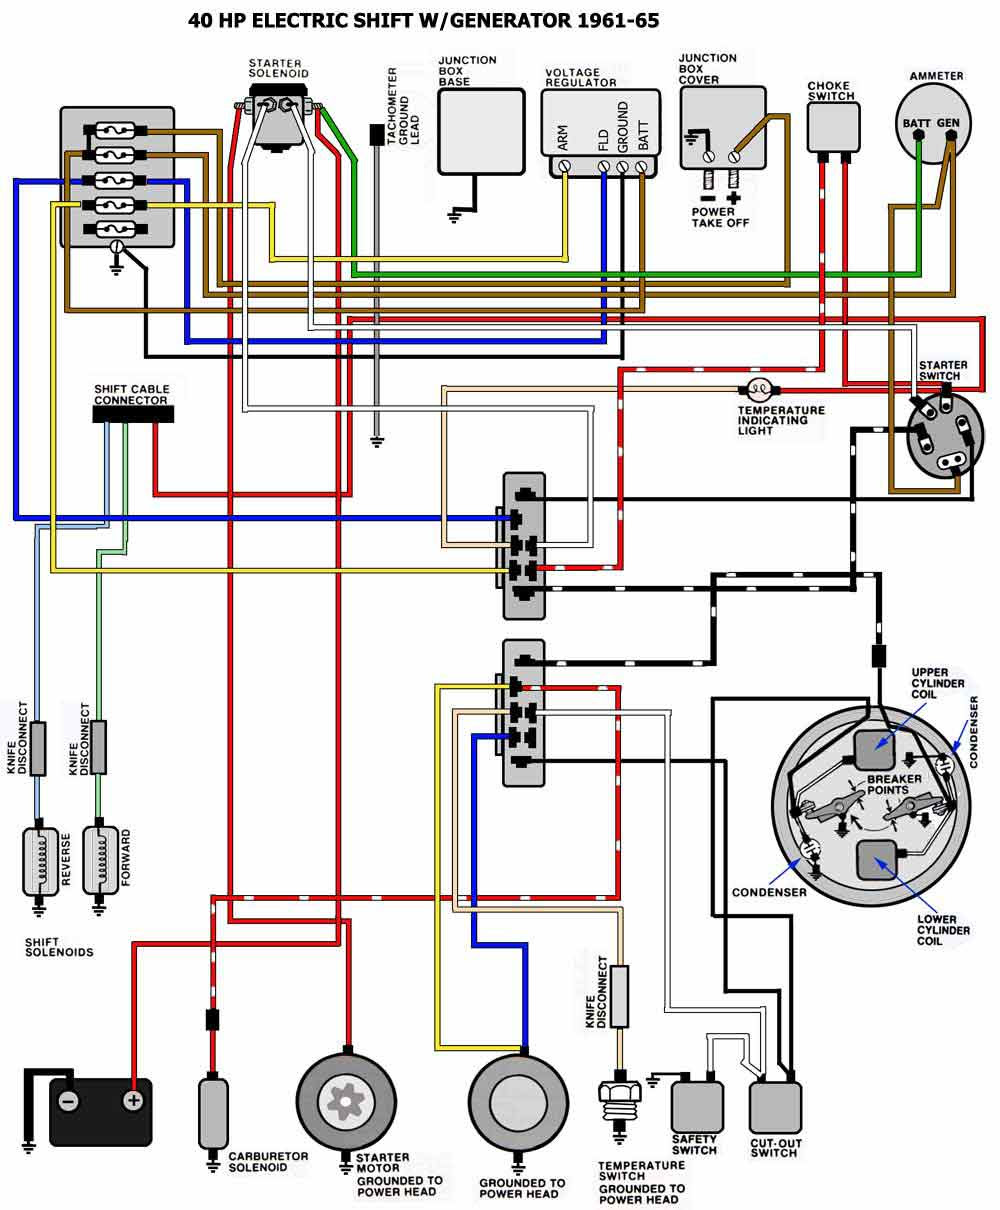 Diagram Fj 40 Wiring Diagram Full Version Hd Quality Wiring Diagram Pvdiagramxfloyd Cuartetango It